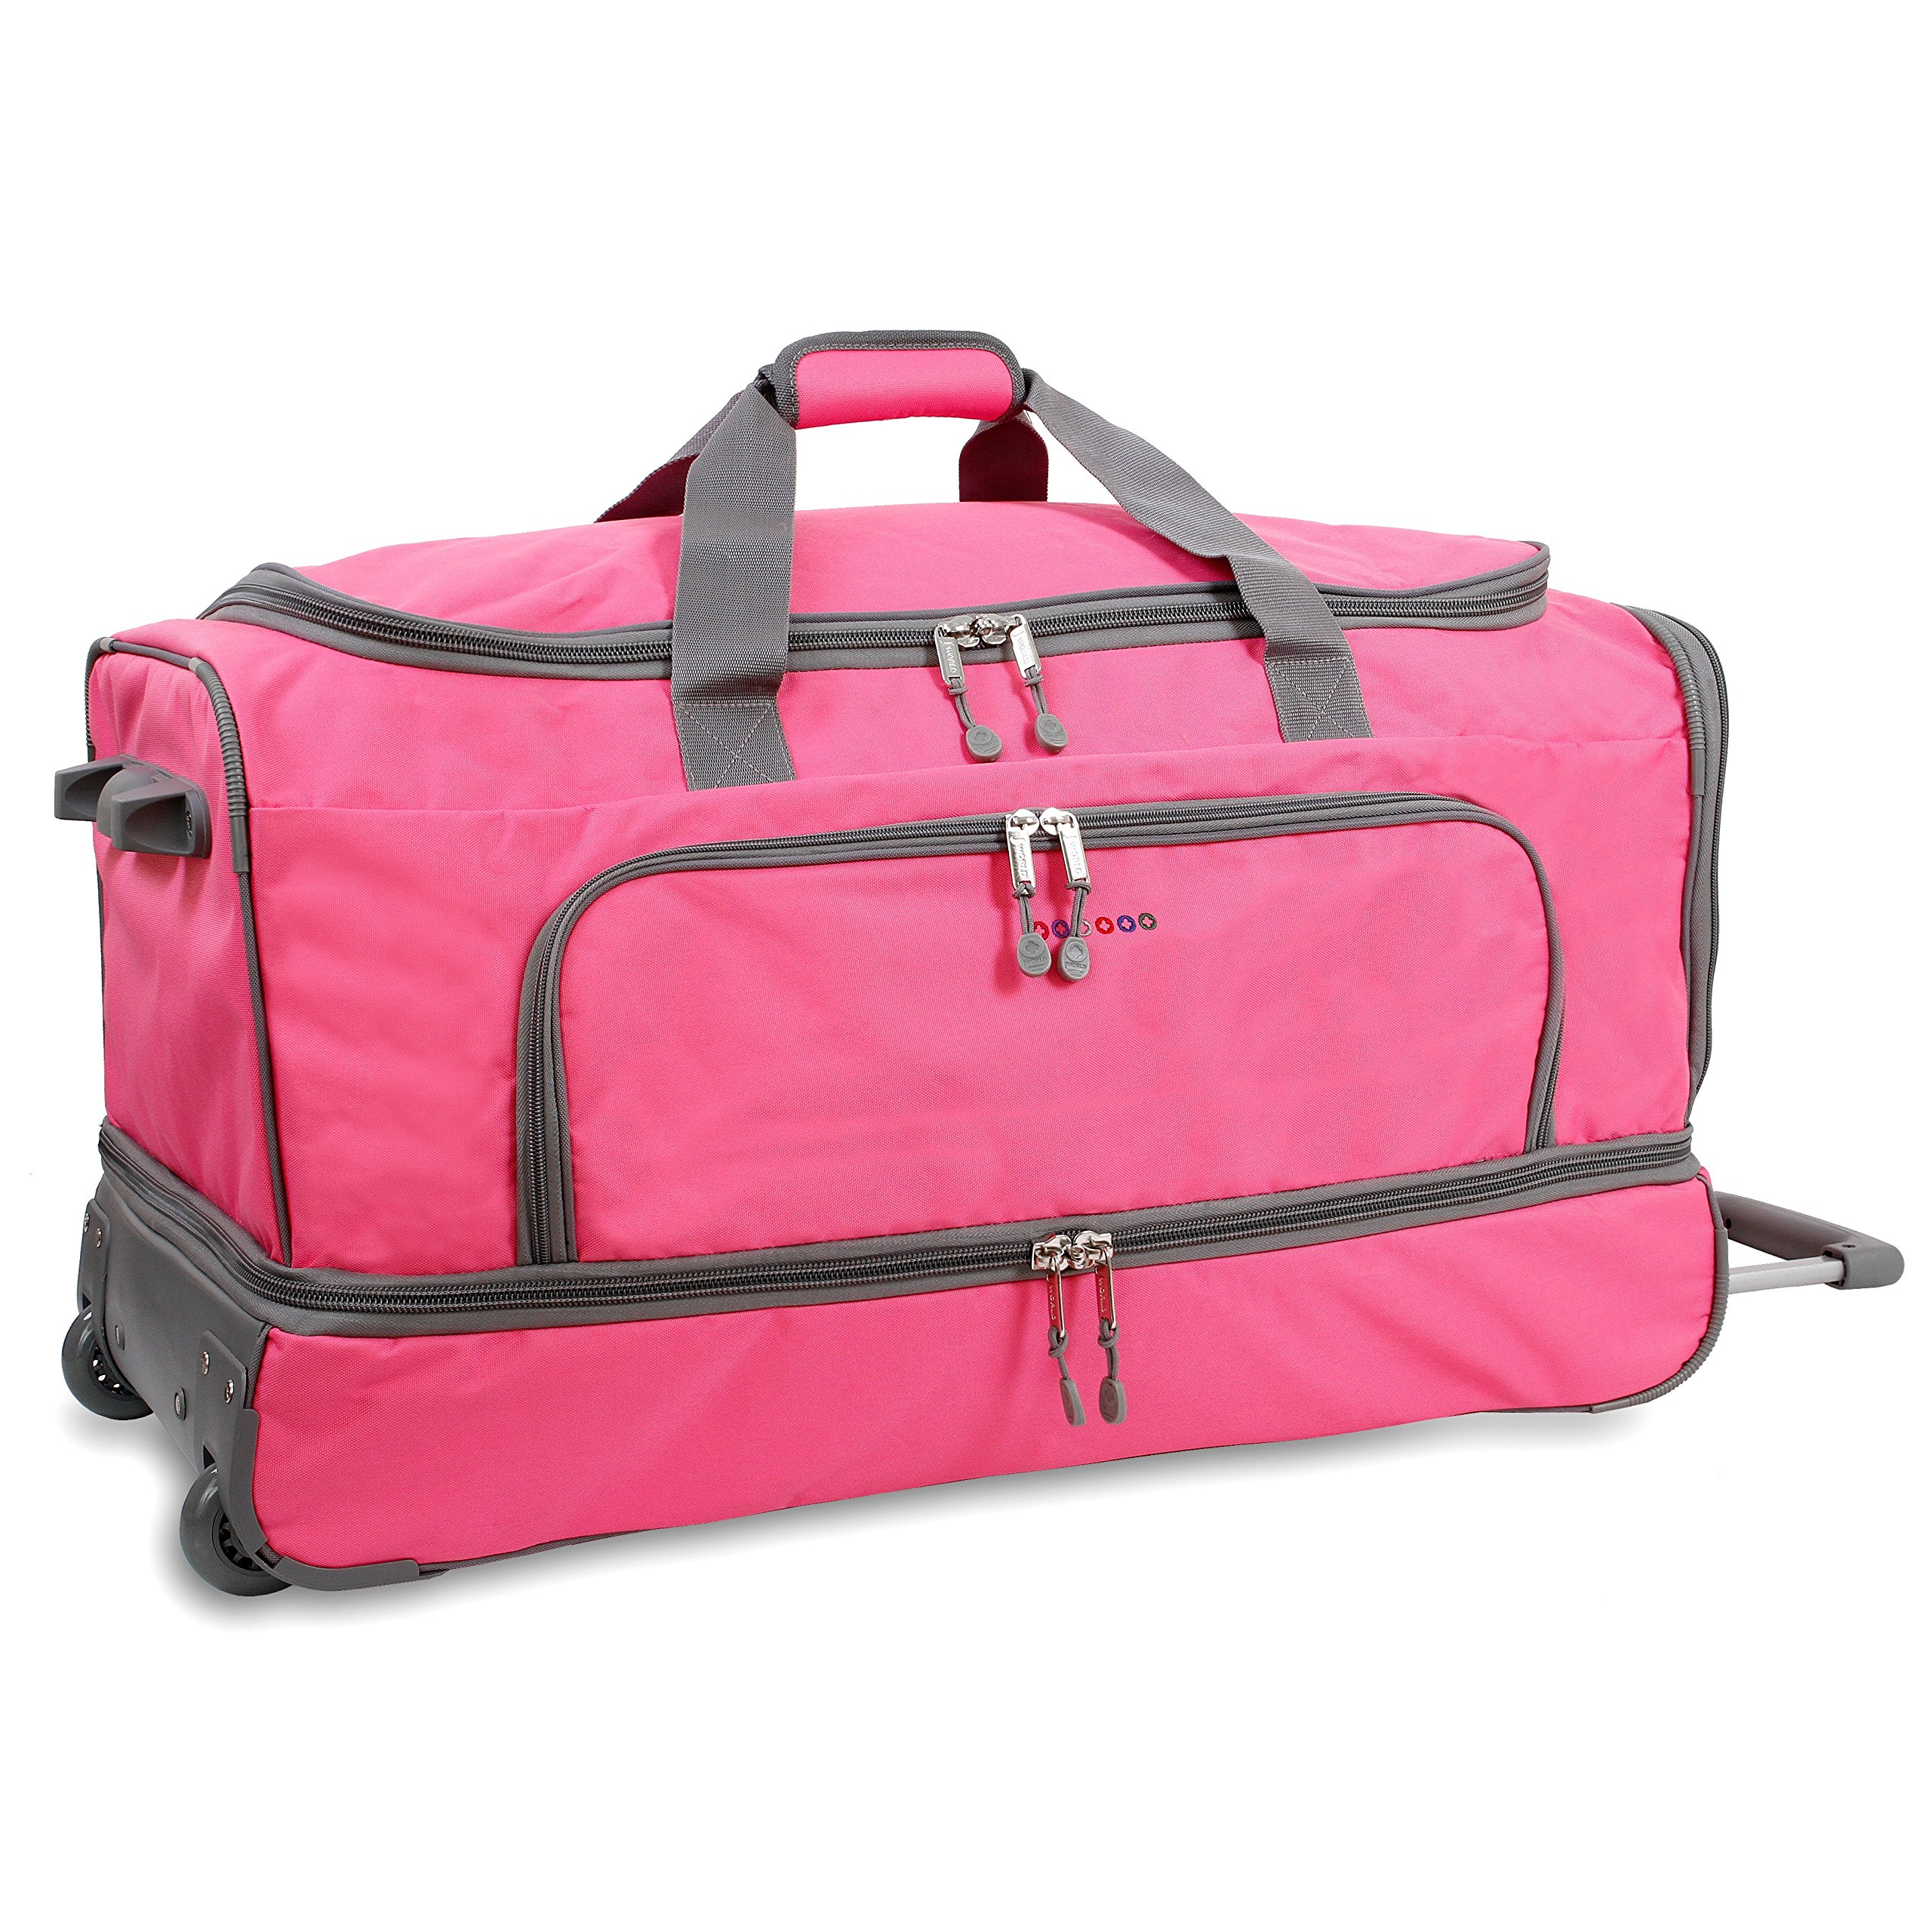 OS Pink 30-Inch Drop Bottom Softsided Rolling Duffel Bag, Nylon & Polyester by OS (Image #1)